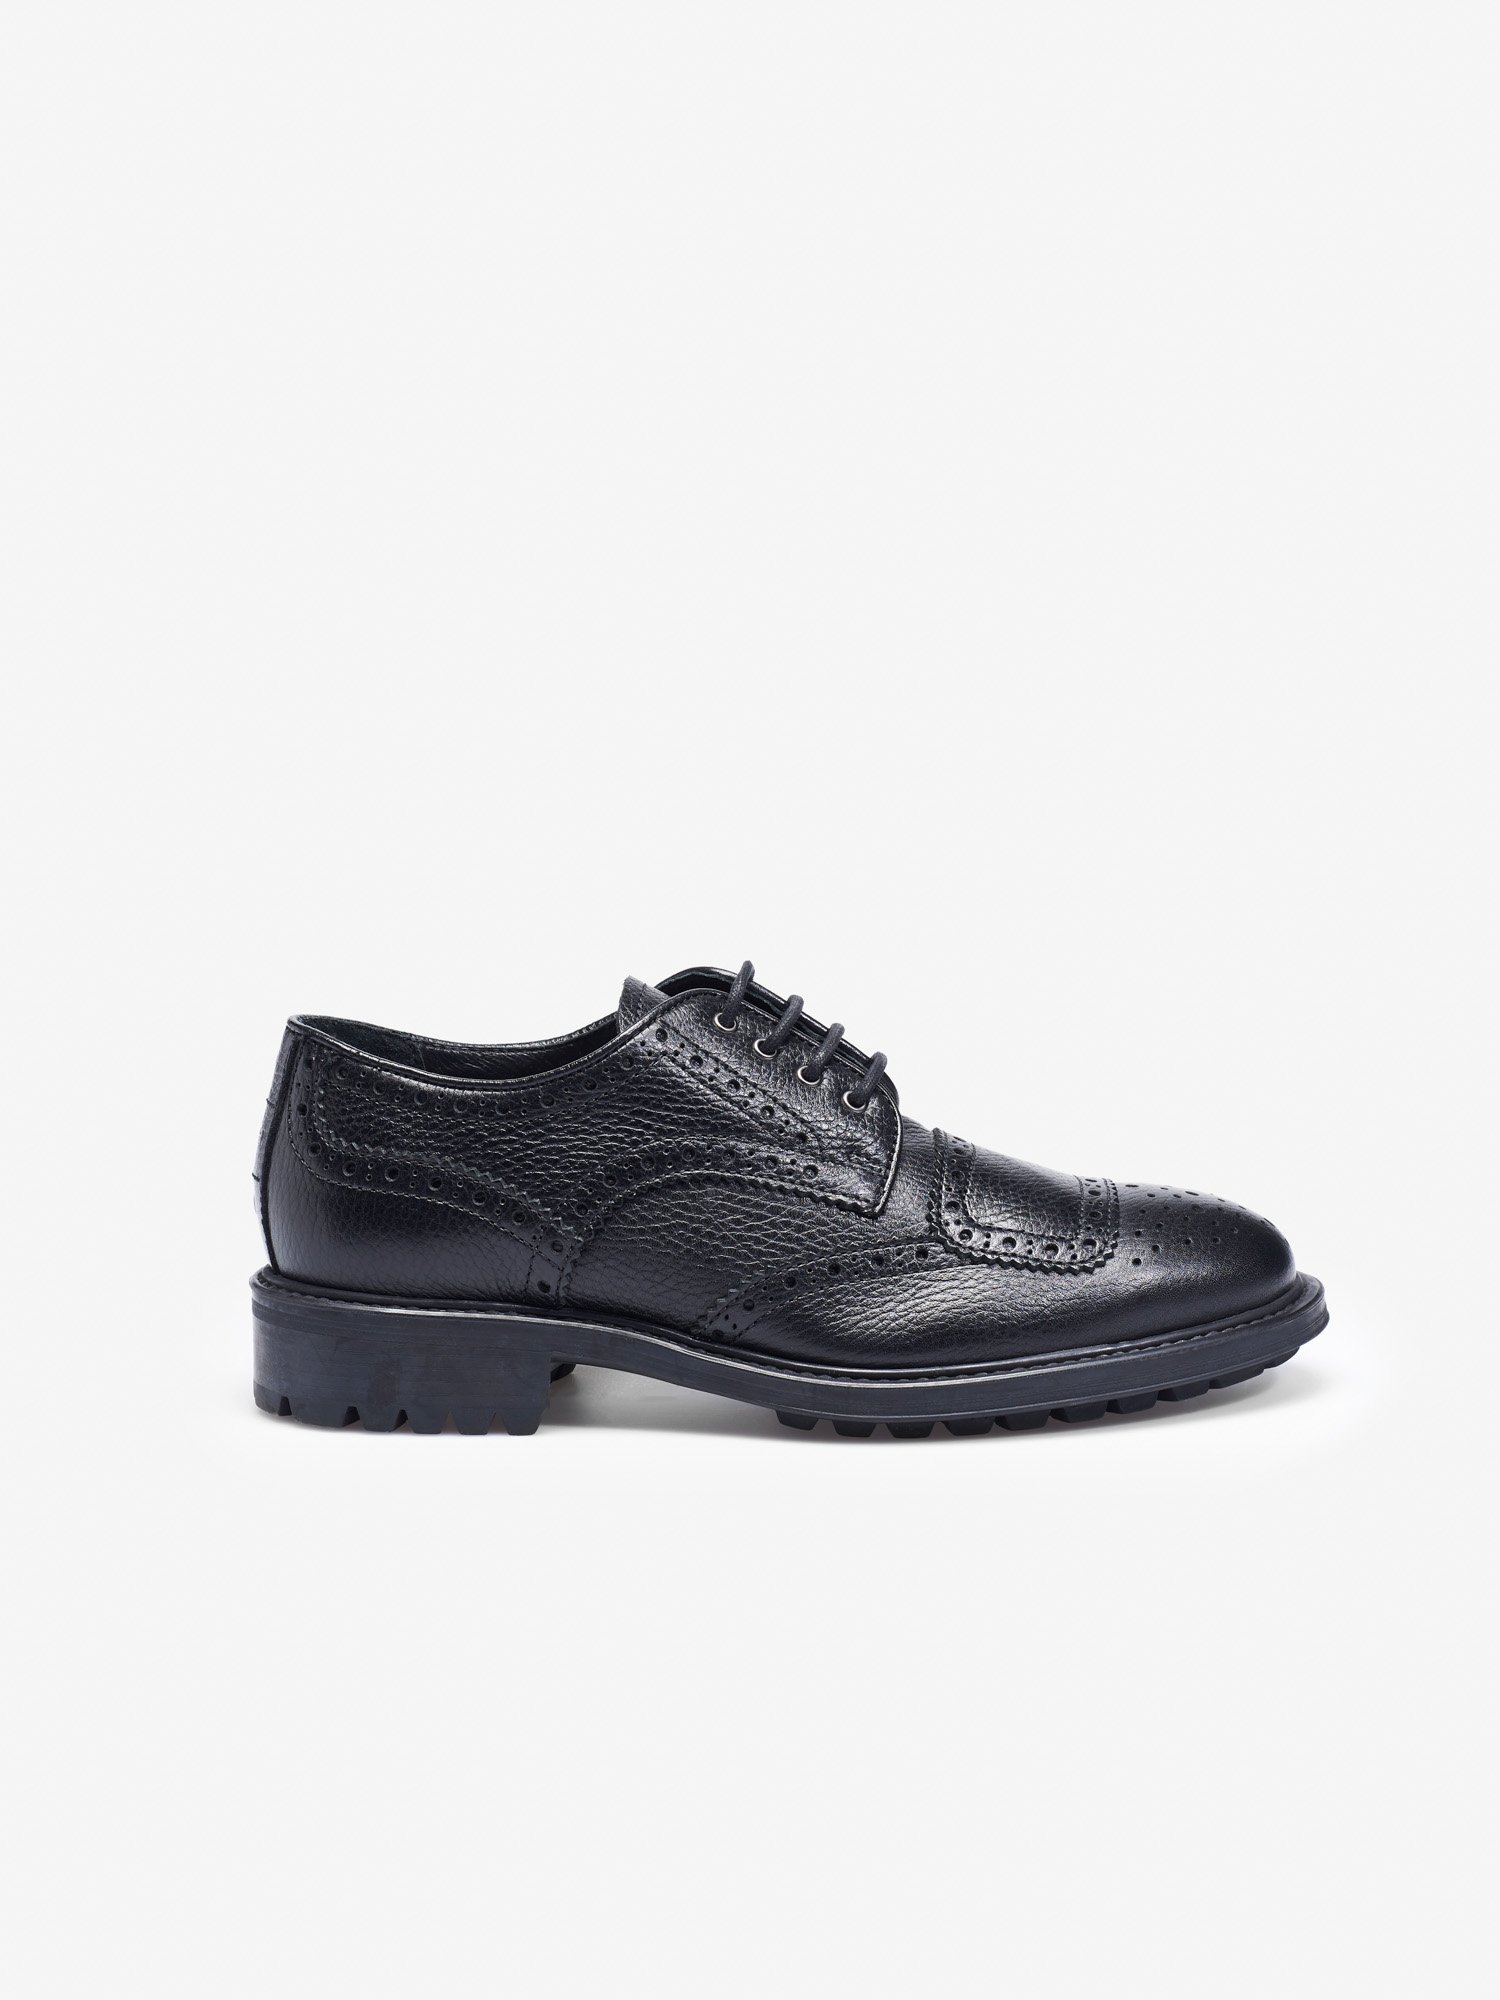 Blauer - BROGUE SHOES IN BLACK LEATHER - Black - Blauer